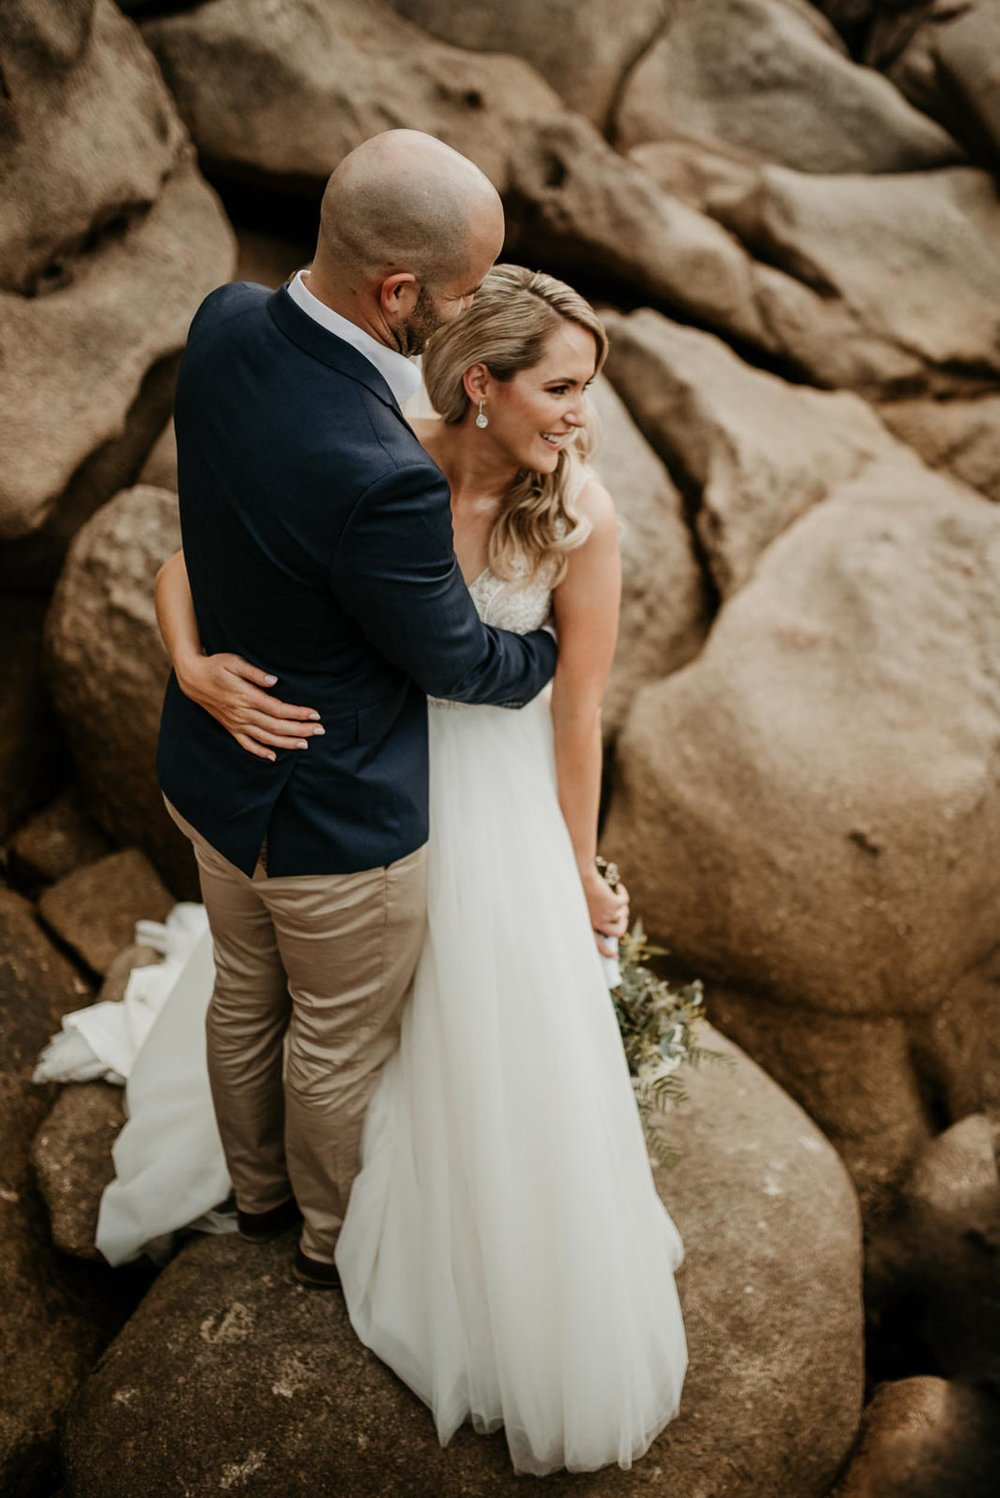 The Raw Photographer - Townsville Wedding Photographer - Magnetic Island - Destination Wedding - Dress White Lily Couture Bridal Nicole Milano-34.jpg